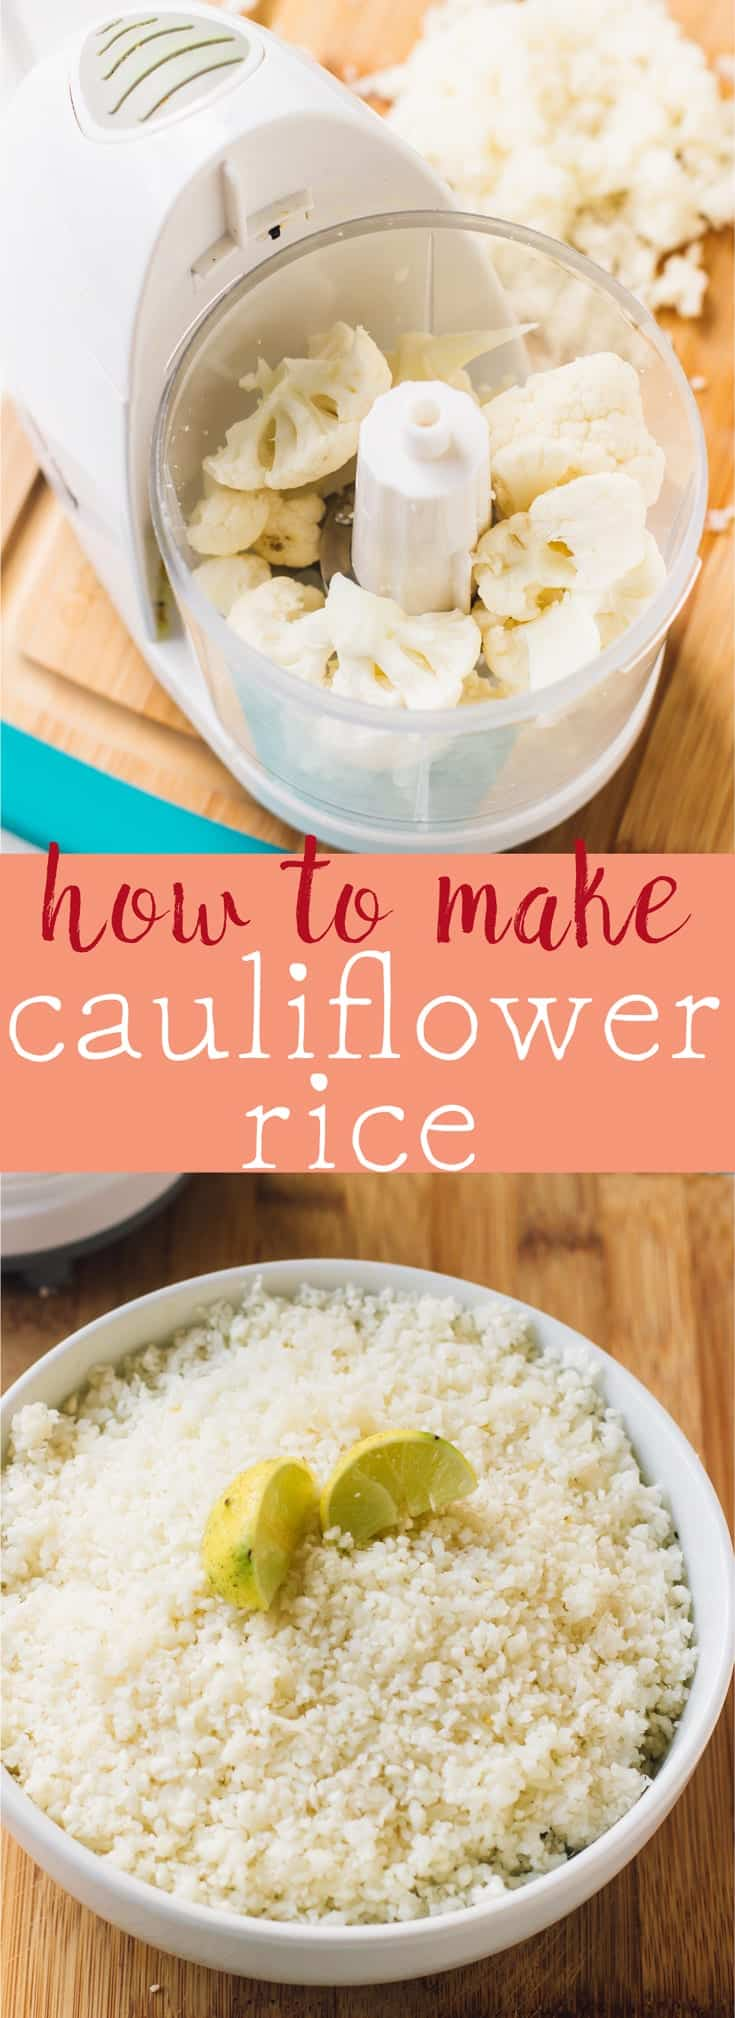 Learn how to make cauliflower rice in a few short steps in 15 minutes! So easy, and a great low carb and low cal alternative to regular rice!